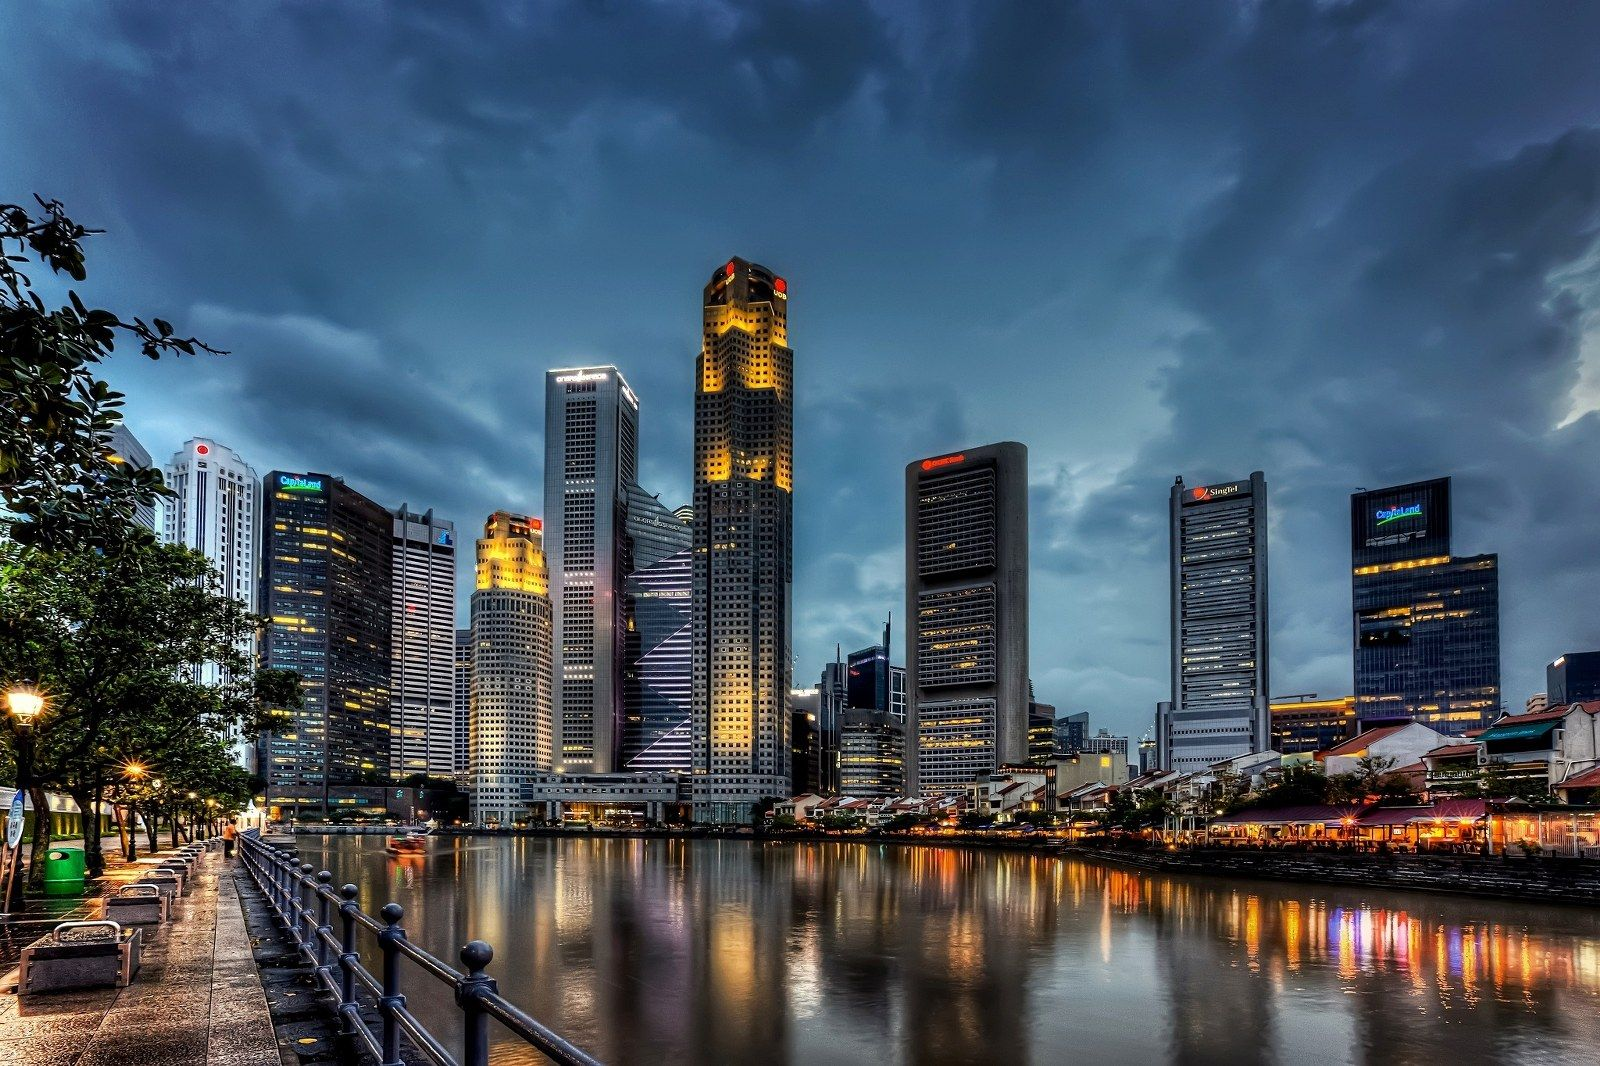 Collection Of City Wallpaper Desktop On Hdwallpapers 2560 1024 Desktop Backgrounds Cities 35 Wallpapers Adora Singapore City View Wallpaper City Background